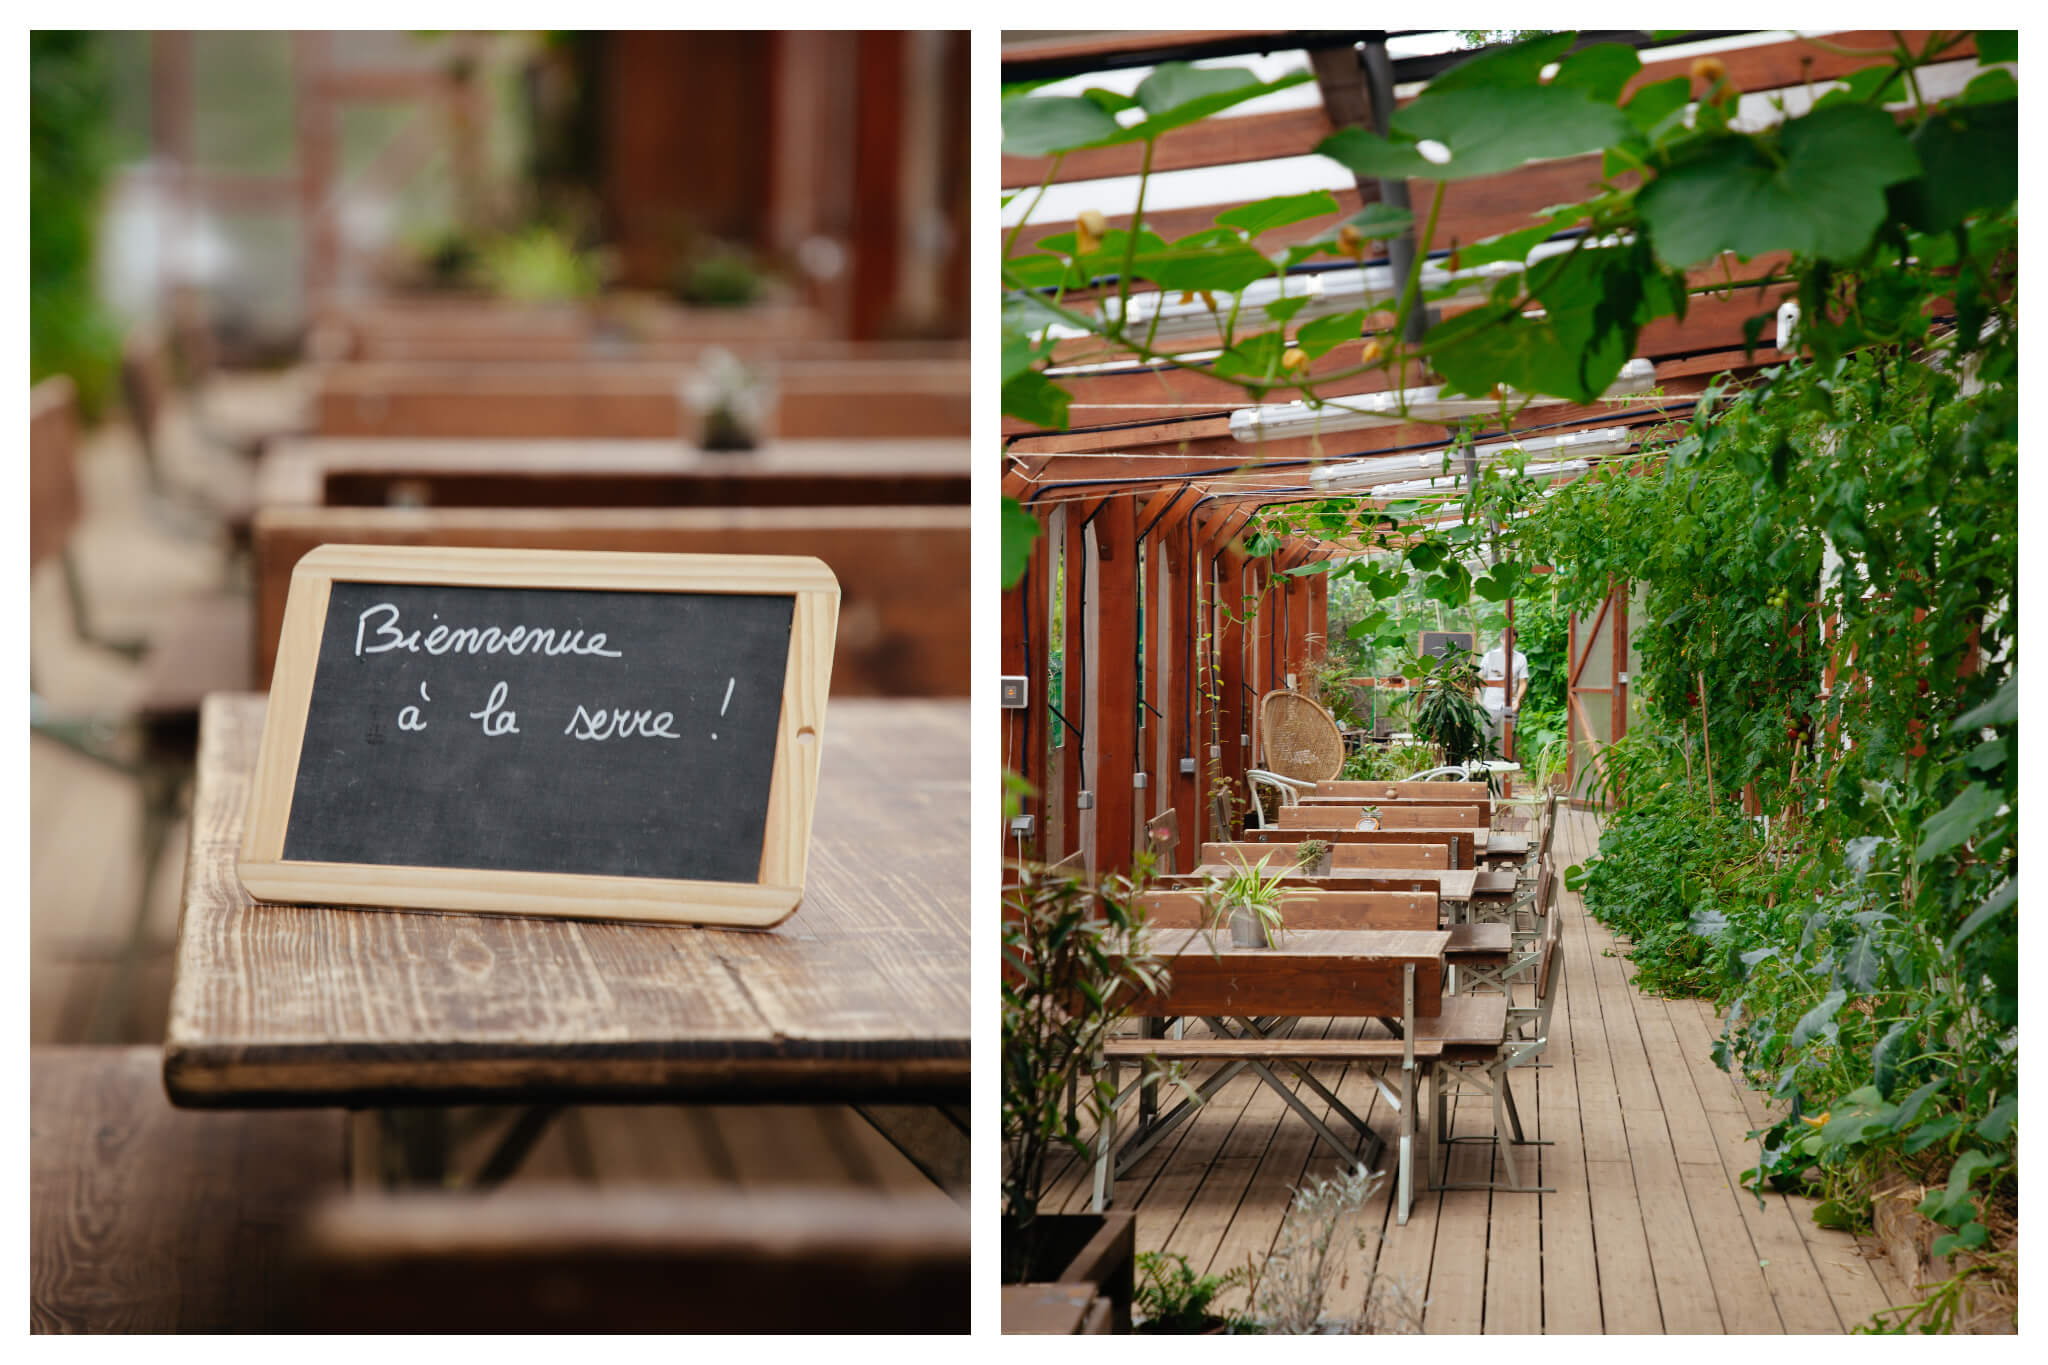 On left: A rustic chalkboard sign welcomes visitors to the greenhouse of La REcyclerie in Paris' 18th arrondissement. On right: Empty farm tables await in the greenhouse of La REcyclerie.